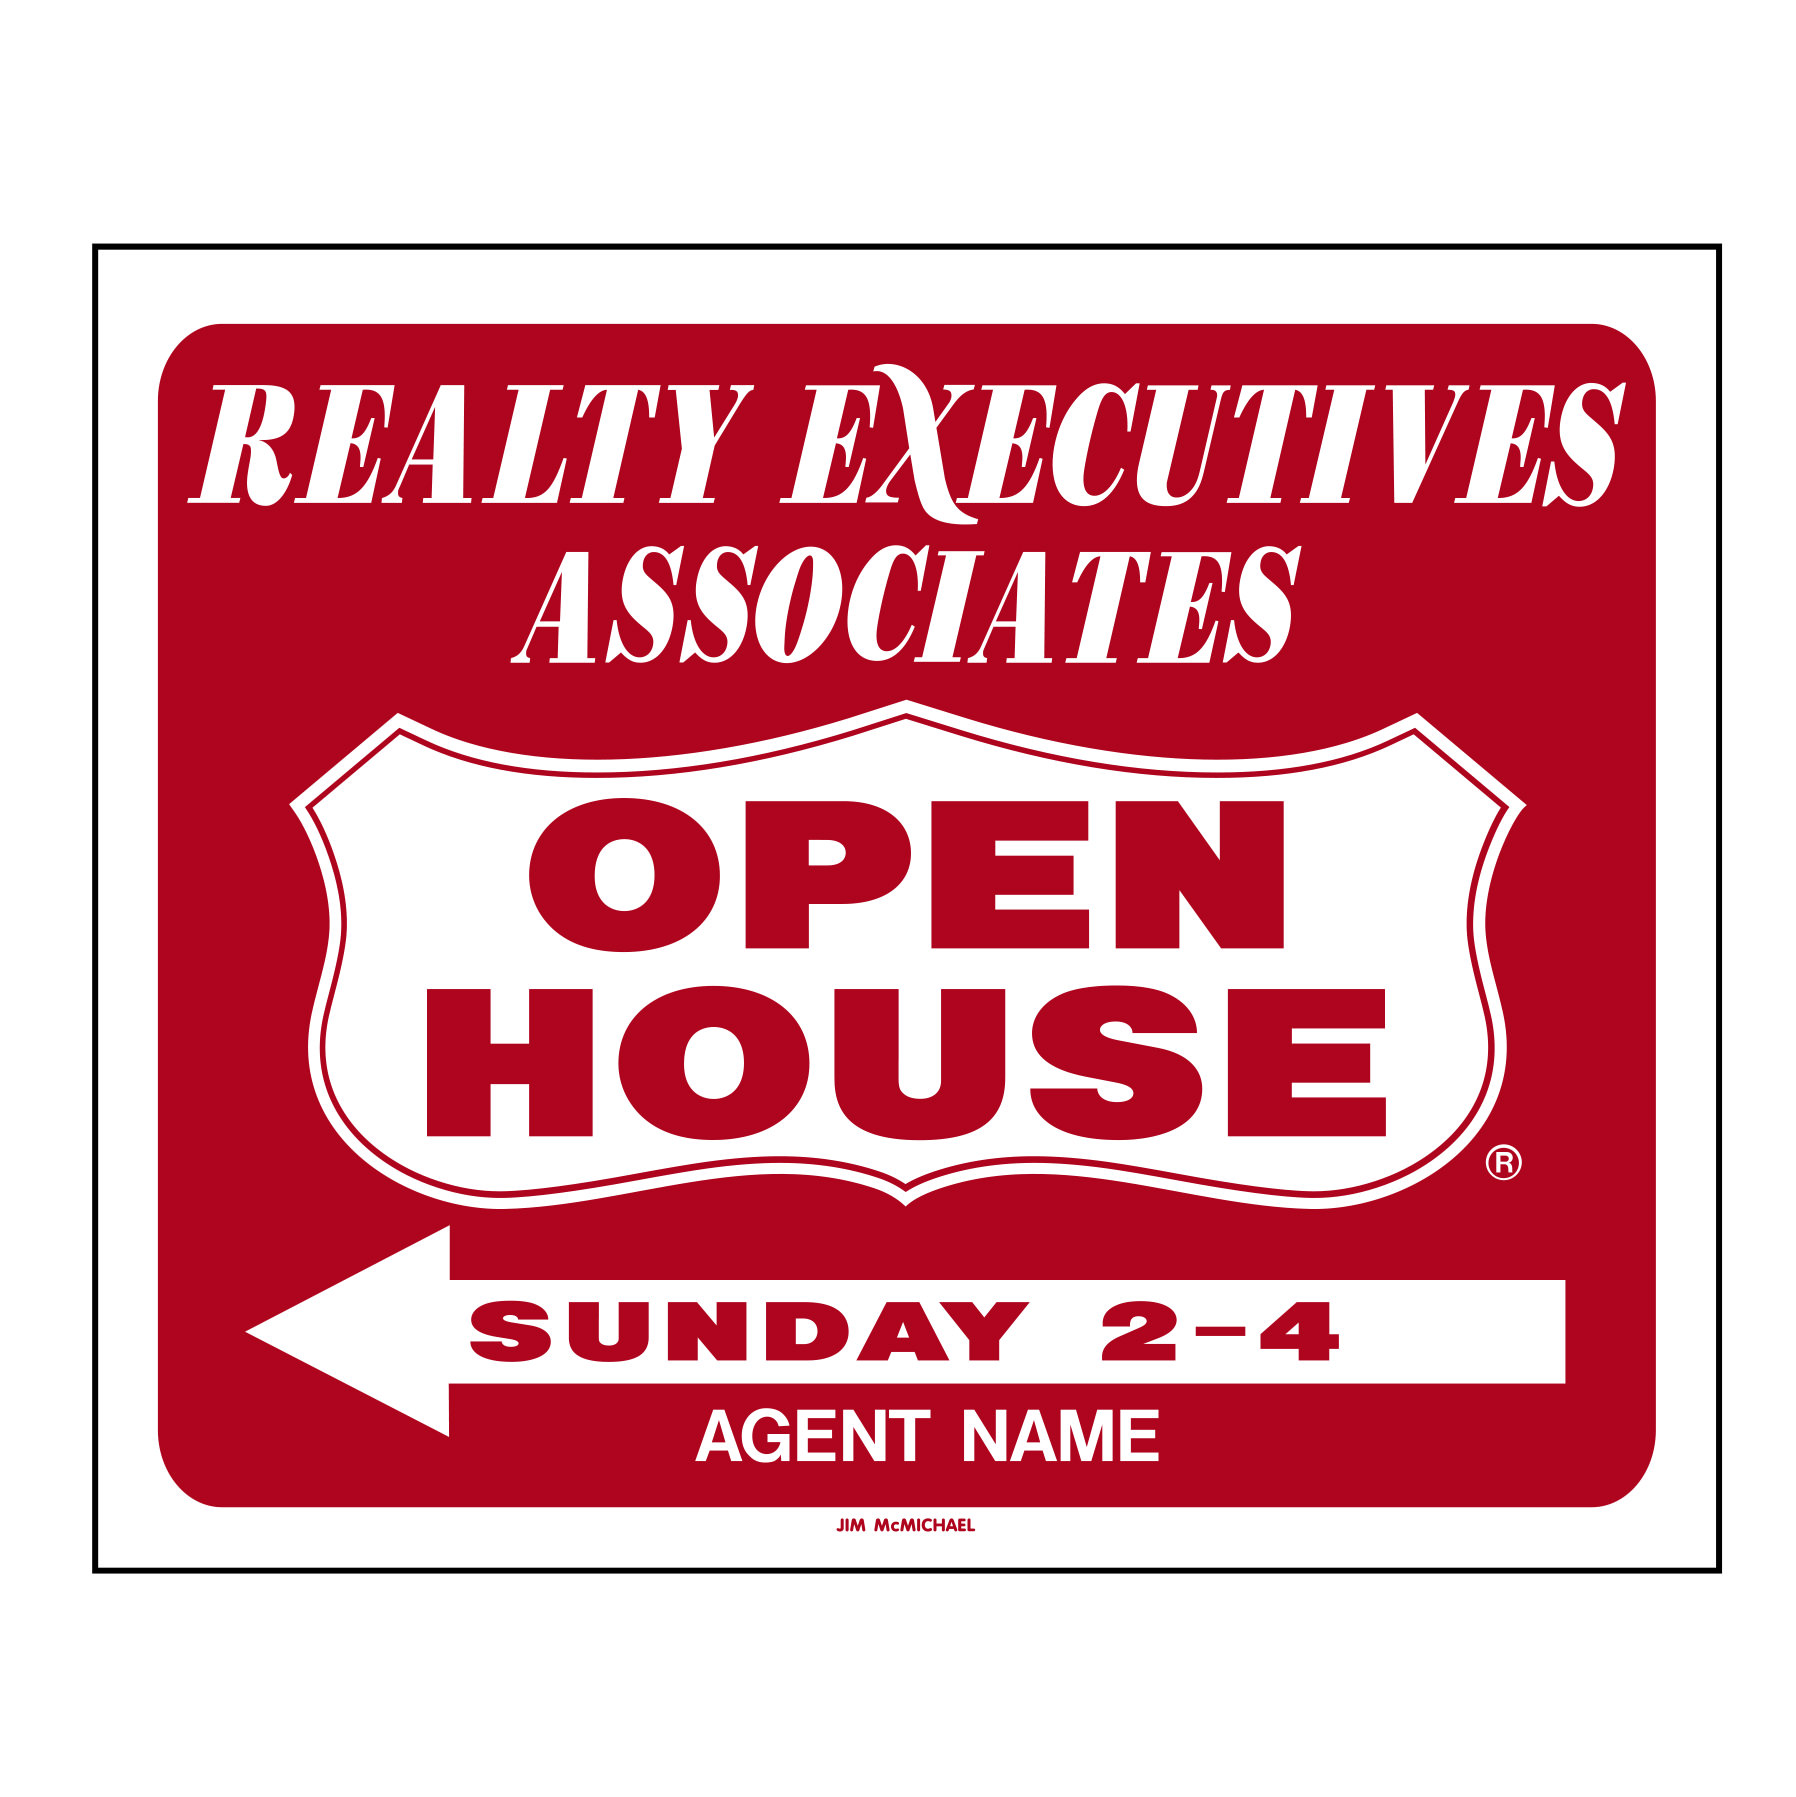 realty-executive-1-color-open-house-sleeve - Jim McMichael